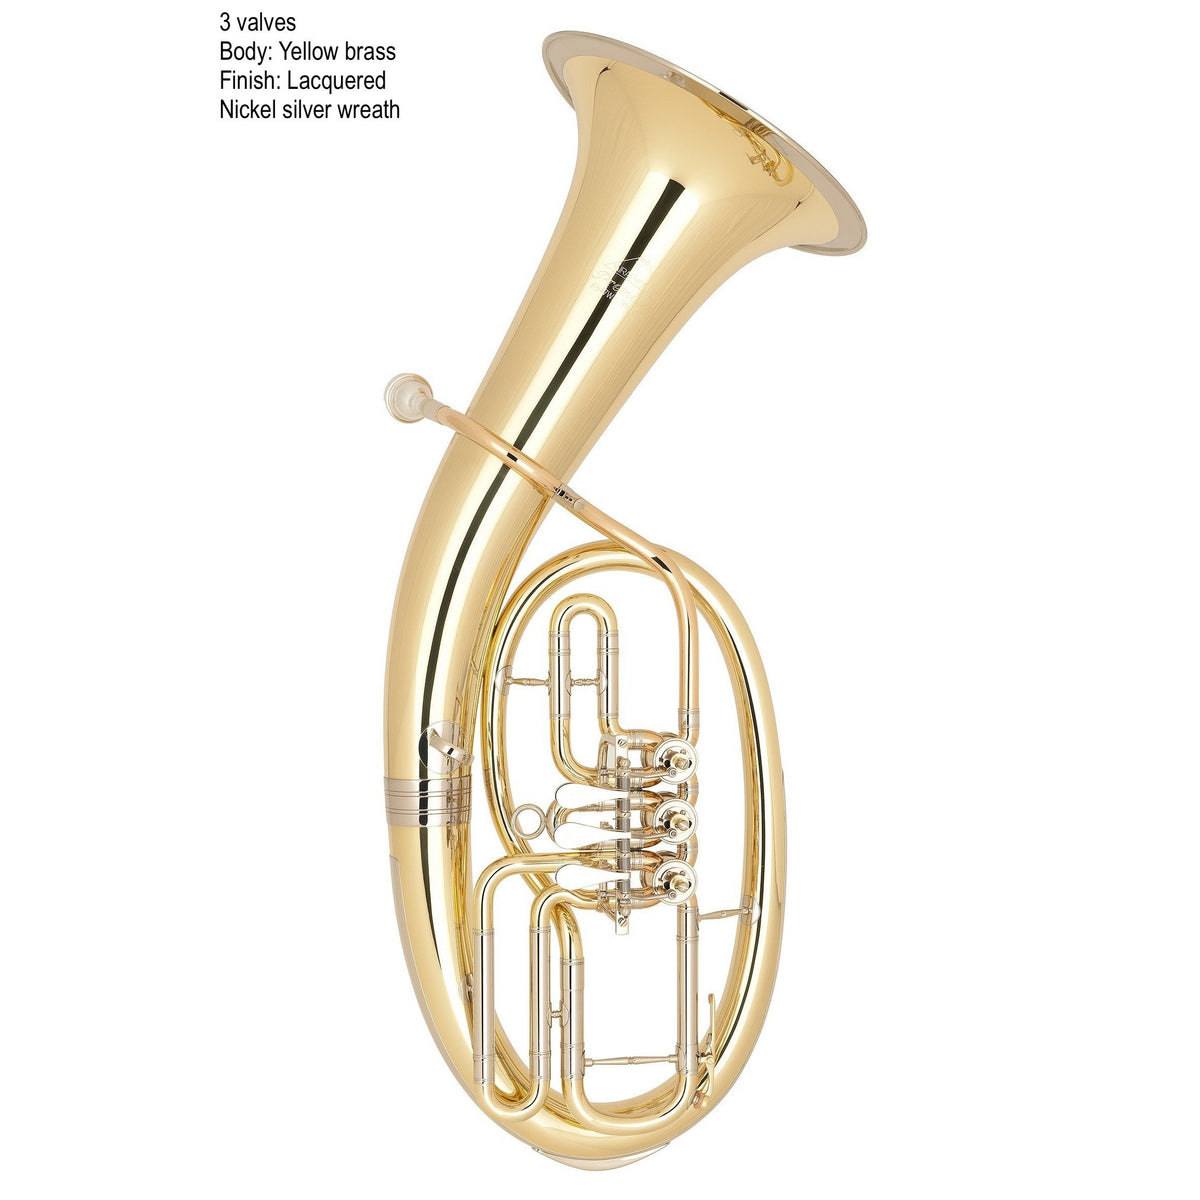 Miraphone - Model 47WL Loimayr Tenor Horns-Tenor Horn-Miraphone-Music Elements